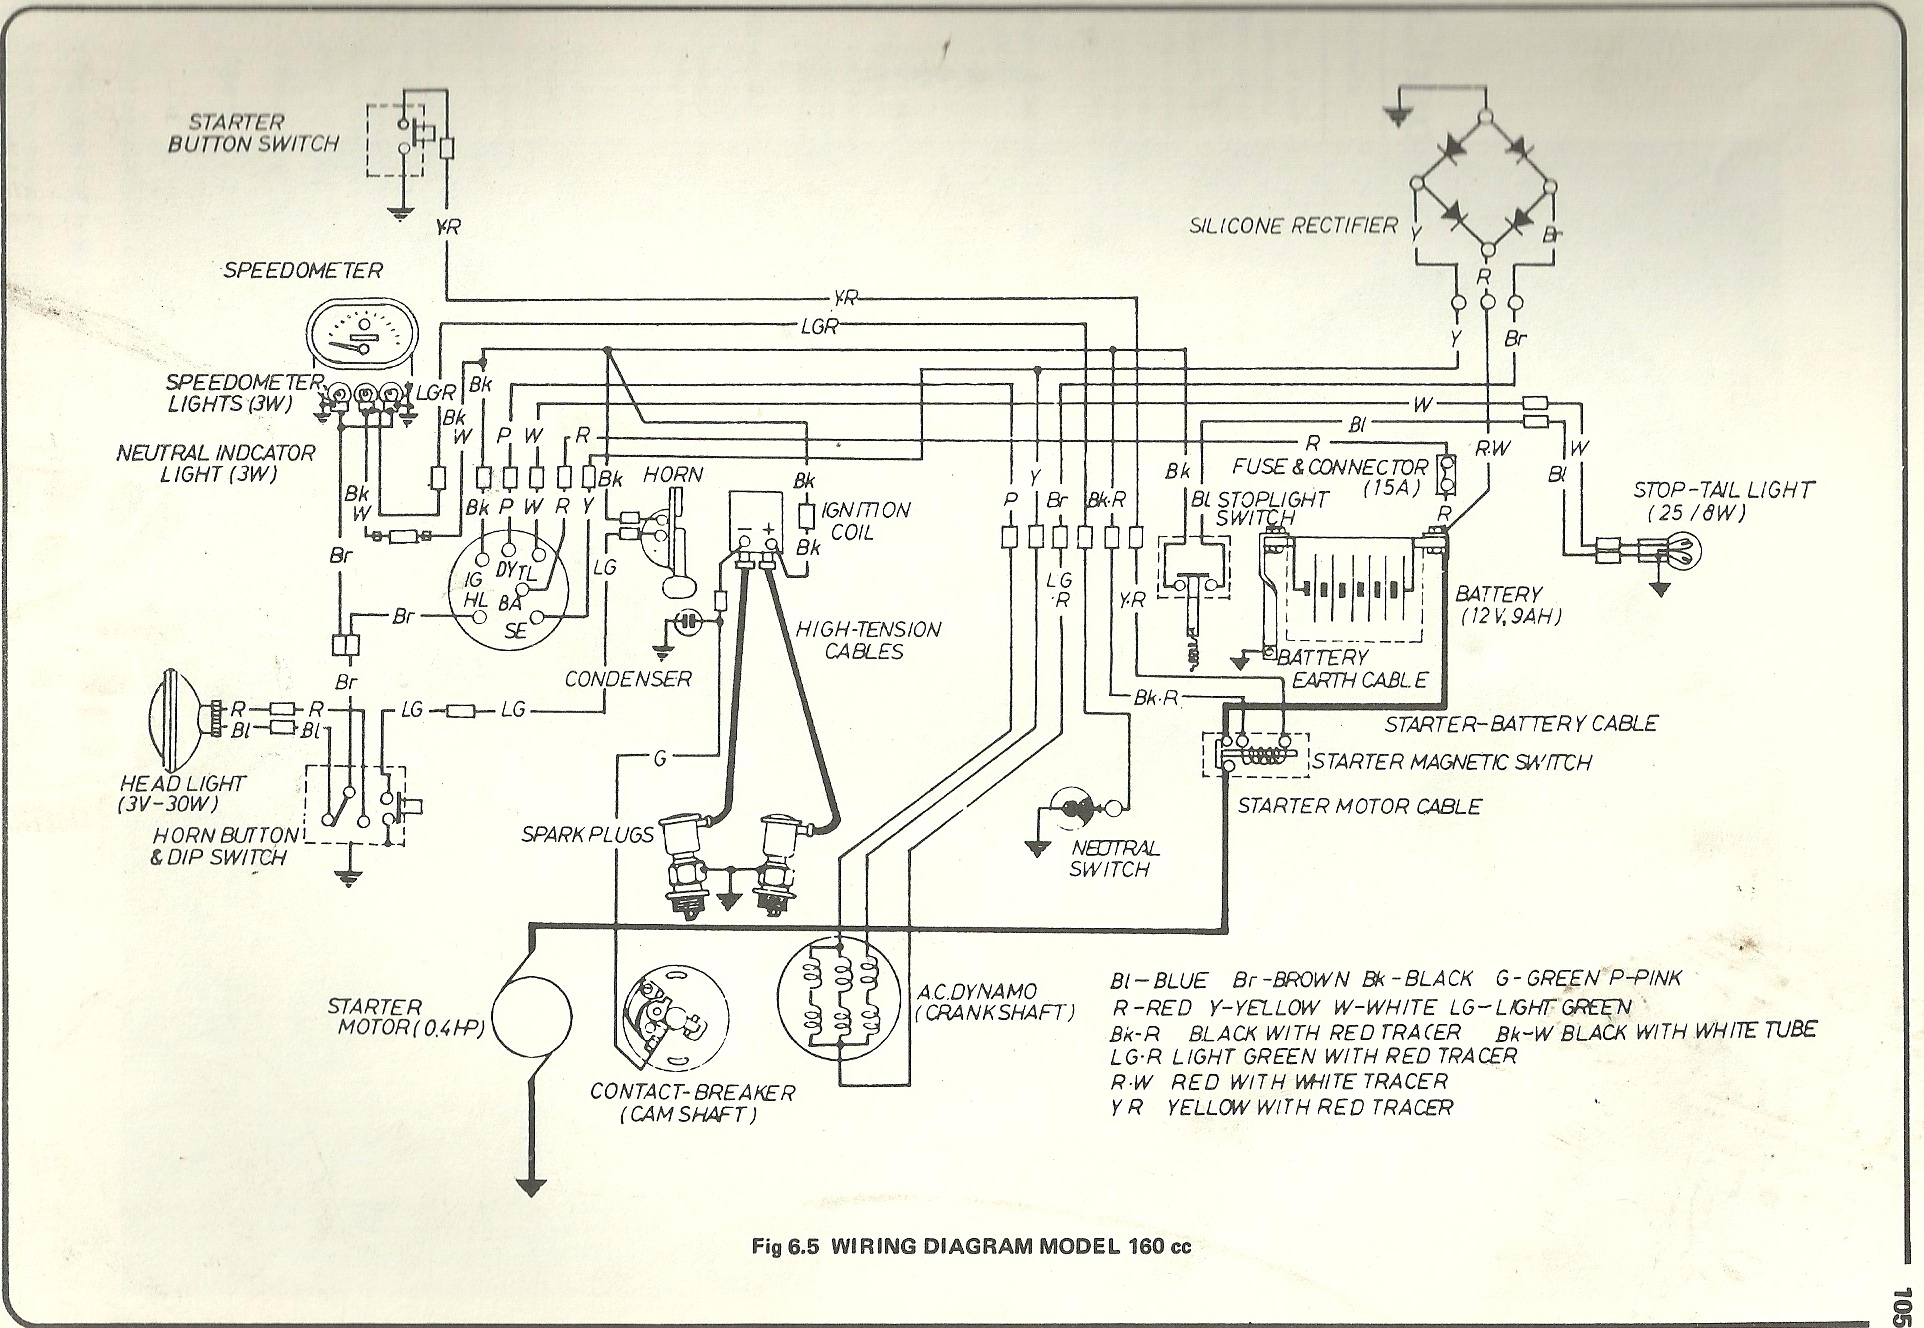 1985 kawasaki klt 160 wiring diagram circuit wiring and diagram hub u2022 rh bdnewsmix com